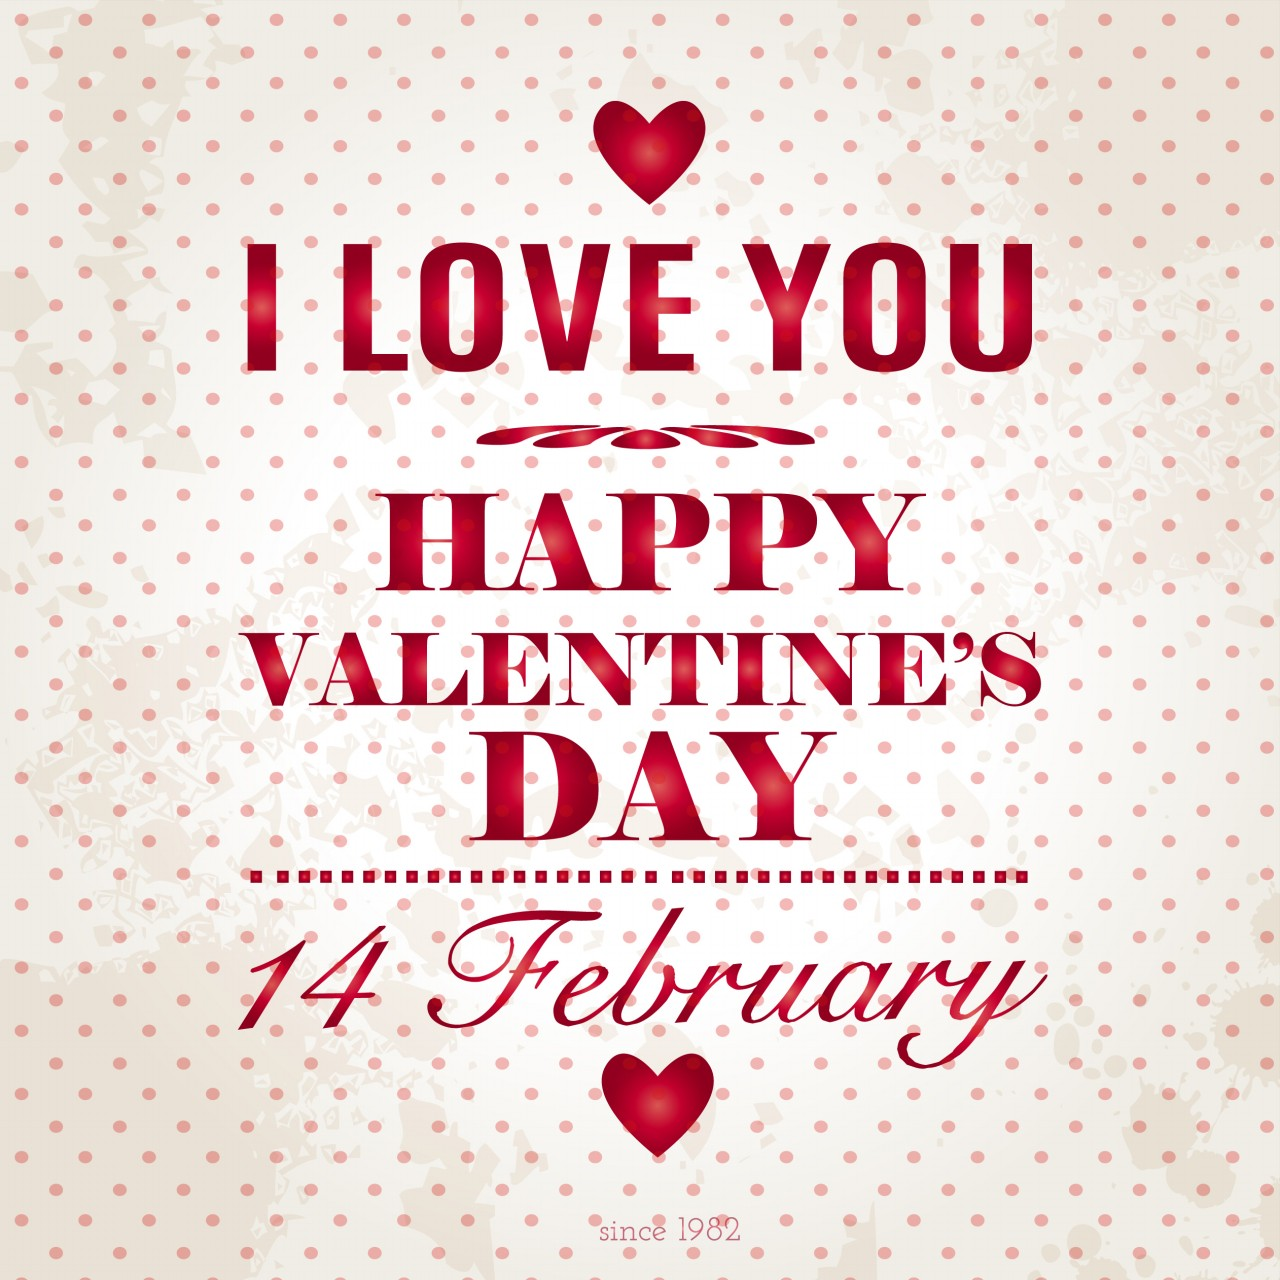 Happy valentines day my love quotes top ten quotes for Love valentines day quotes